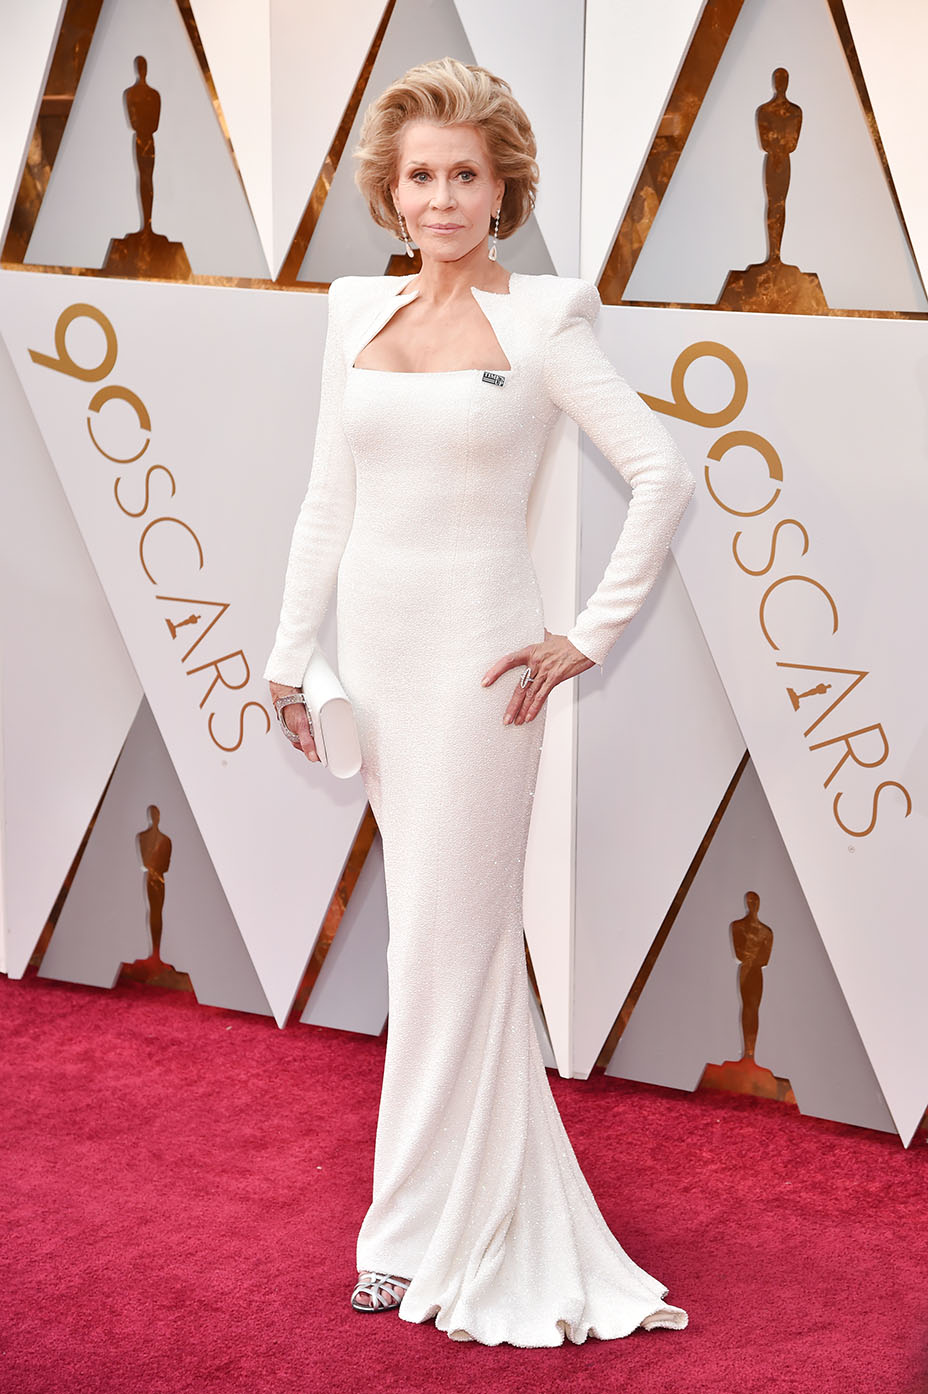 JANE FONDA  | PHOTOGRAPHY Kevin Mazur/Wire Images |   STYLIST Tanya Gill |44 FRANCOIS PREMIER/Balmain's Couture Capsule Collection White Beaded Dress | CHOPARD Jewelry | SALVATORE FERRAGAMO Shoes |PERRIN PARRIS Clutch |